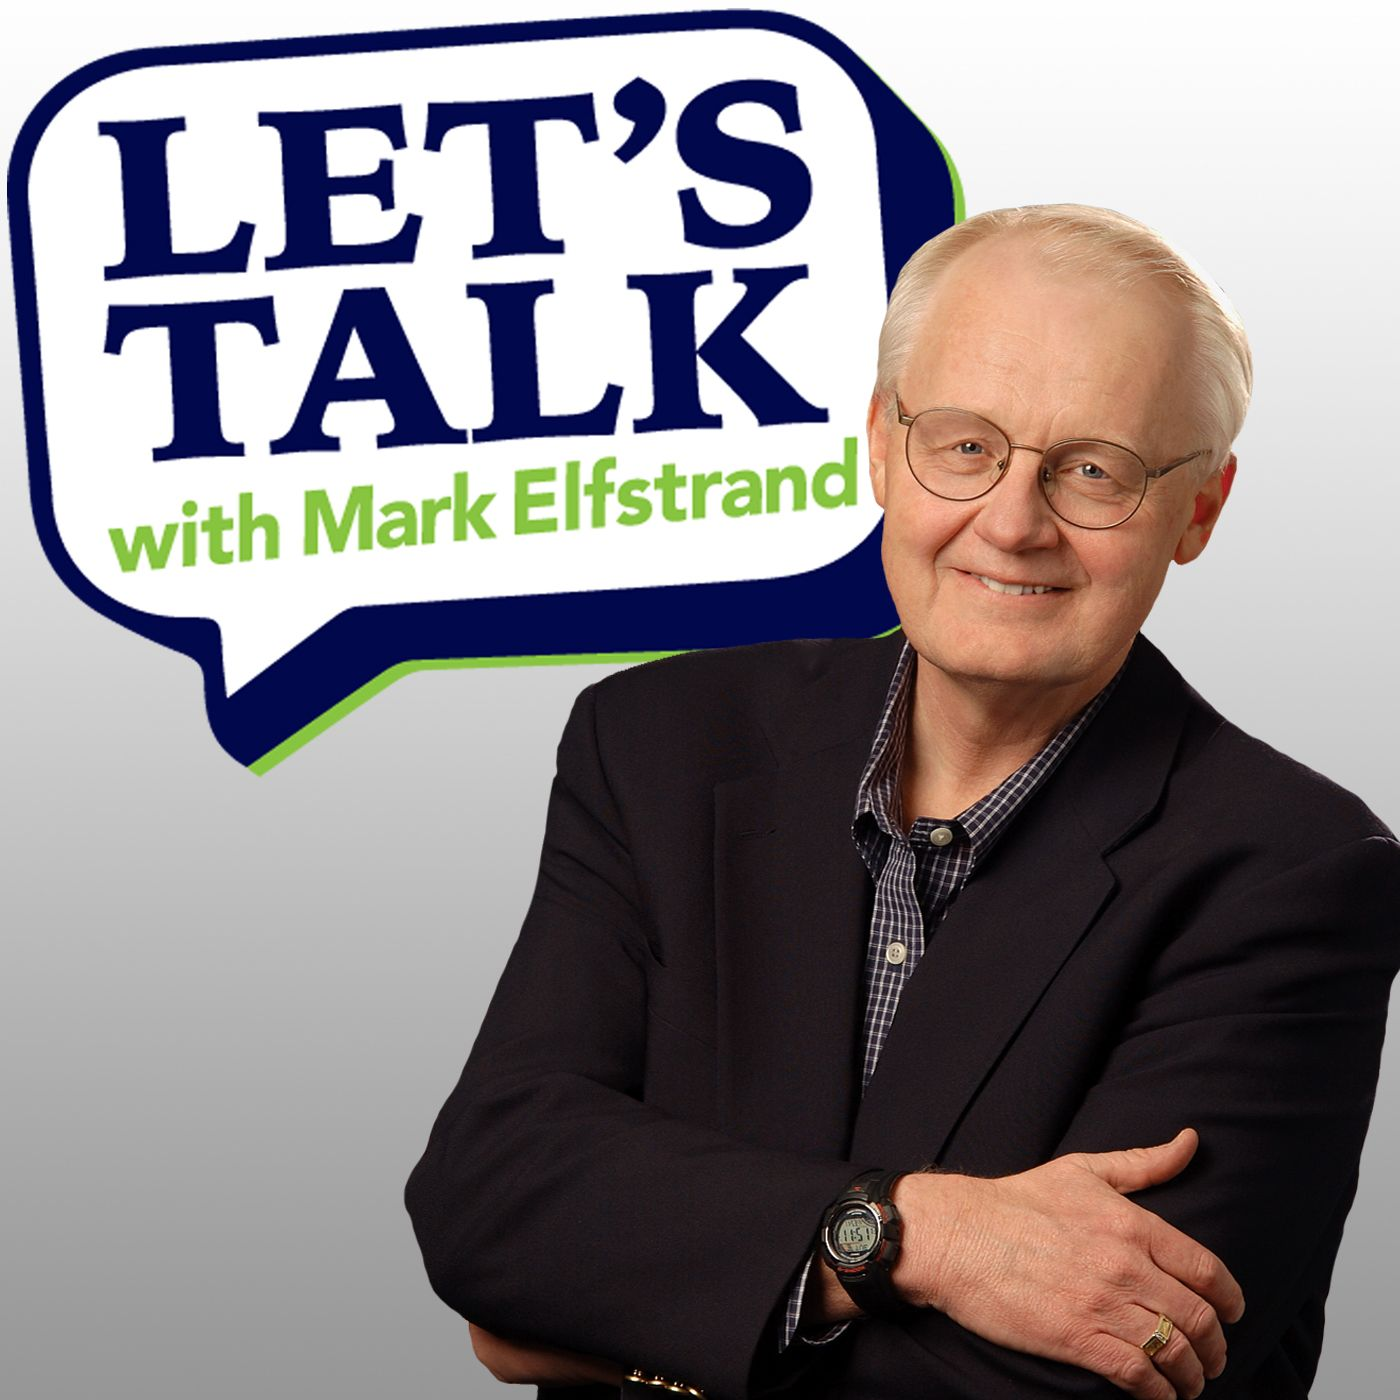 Let's Talk with Mark Elfstrand